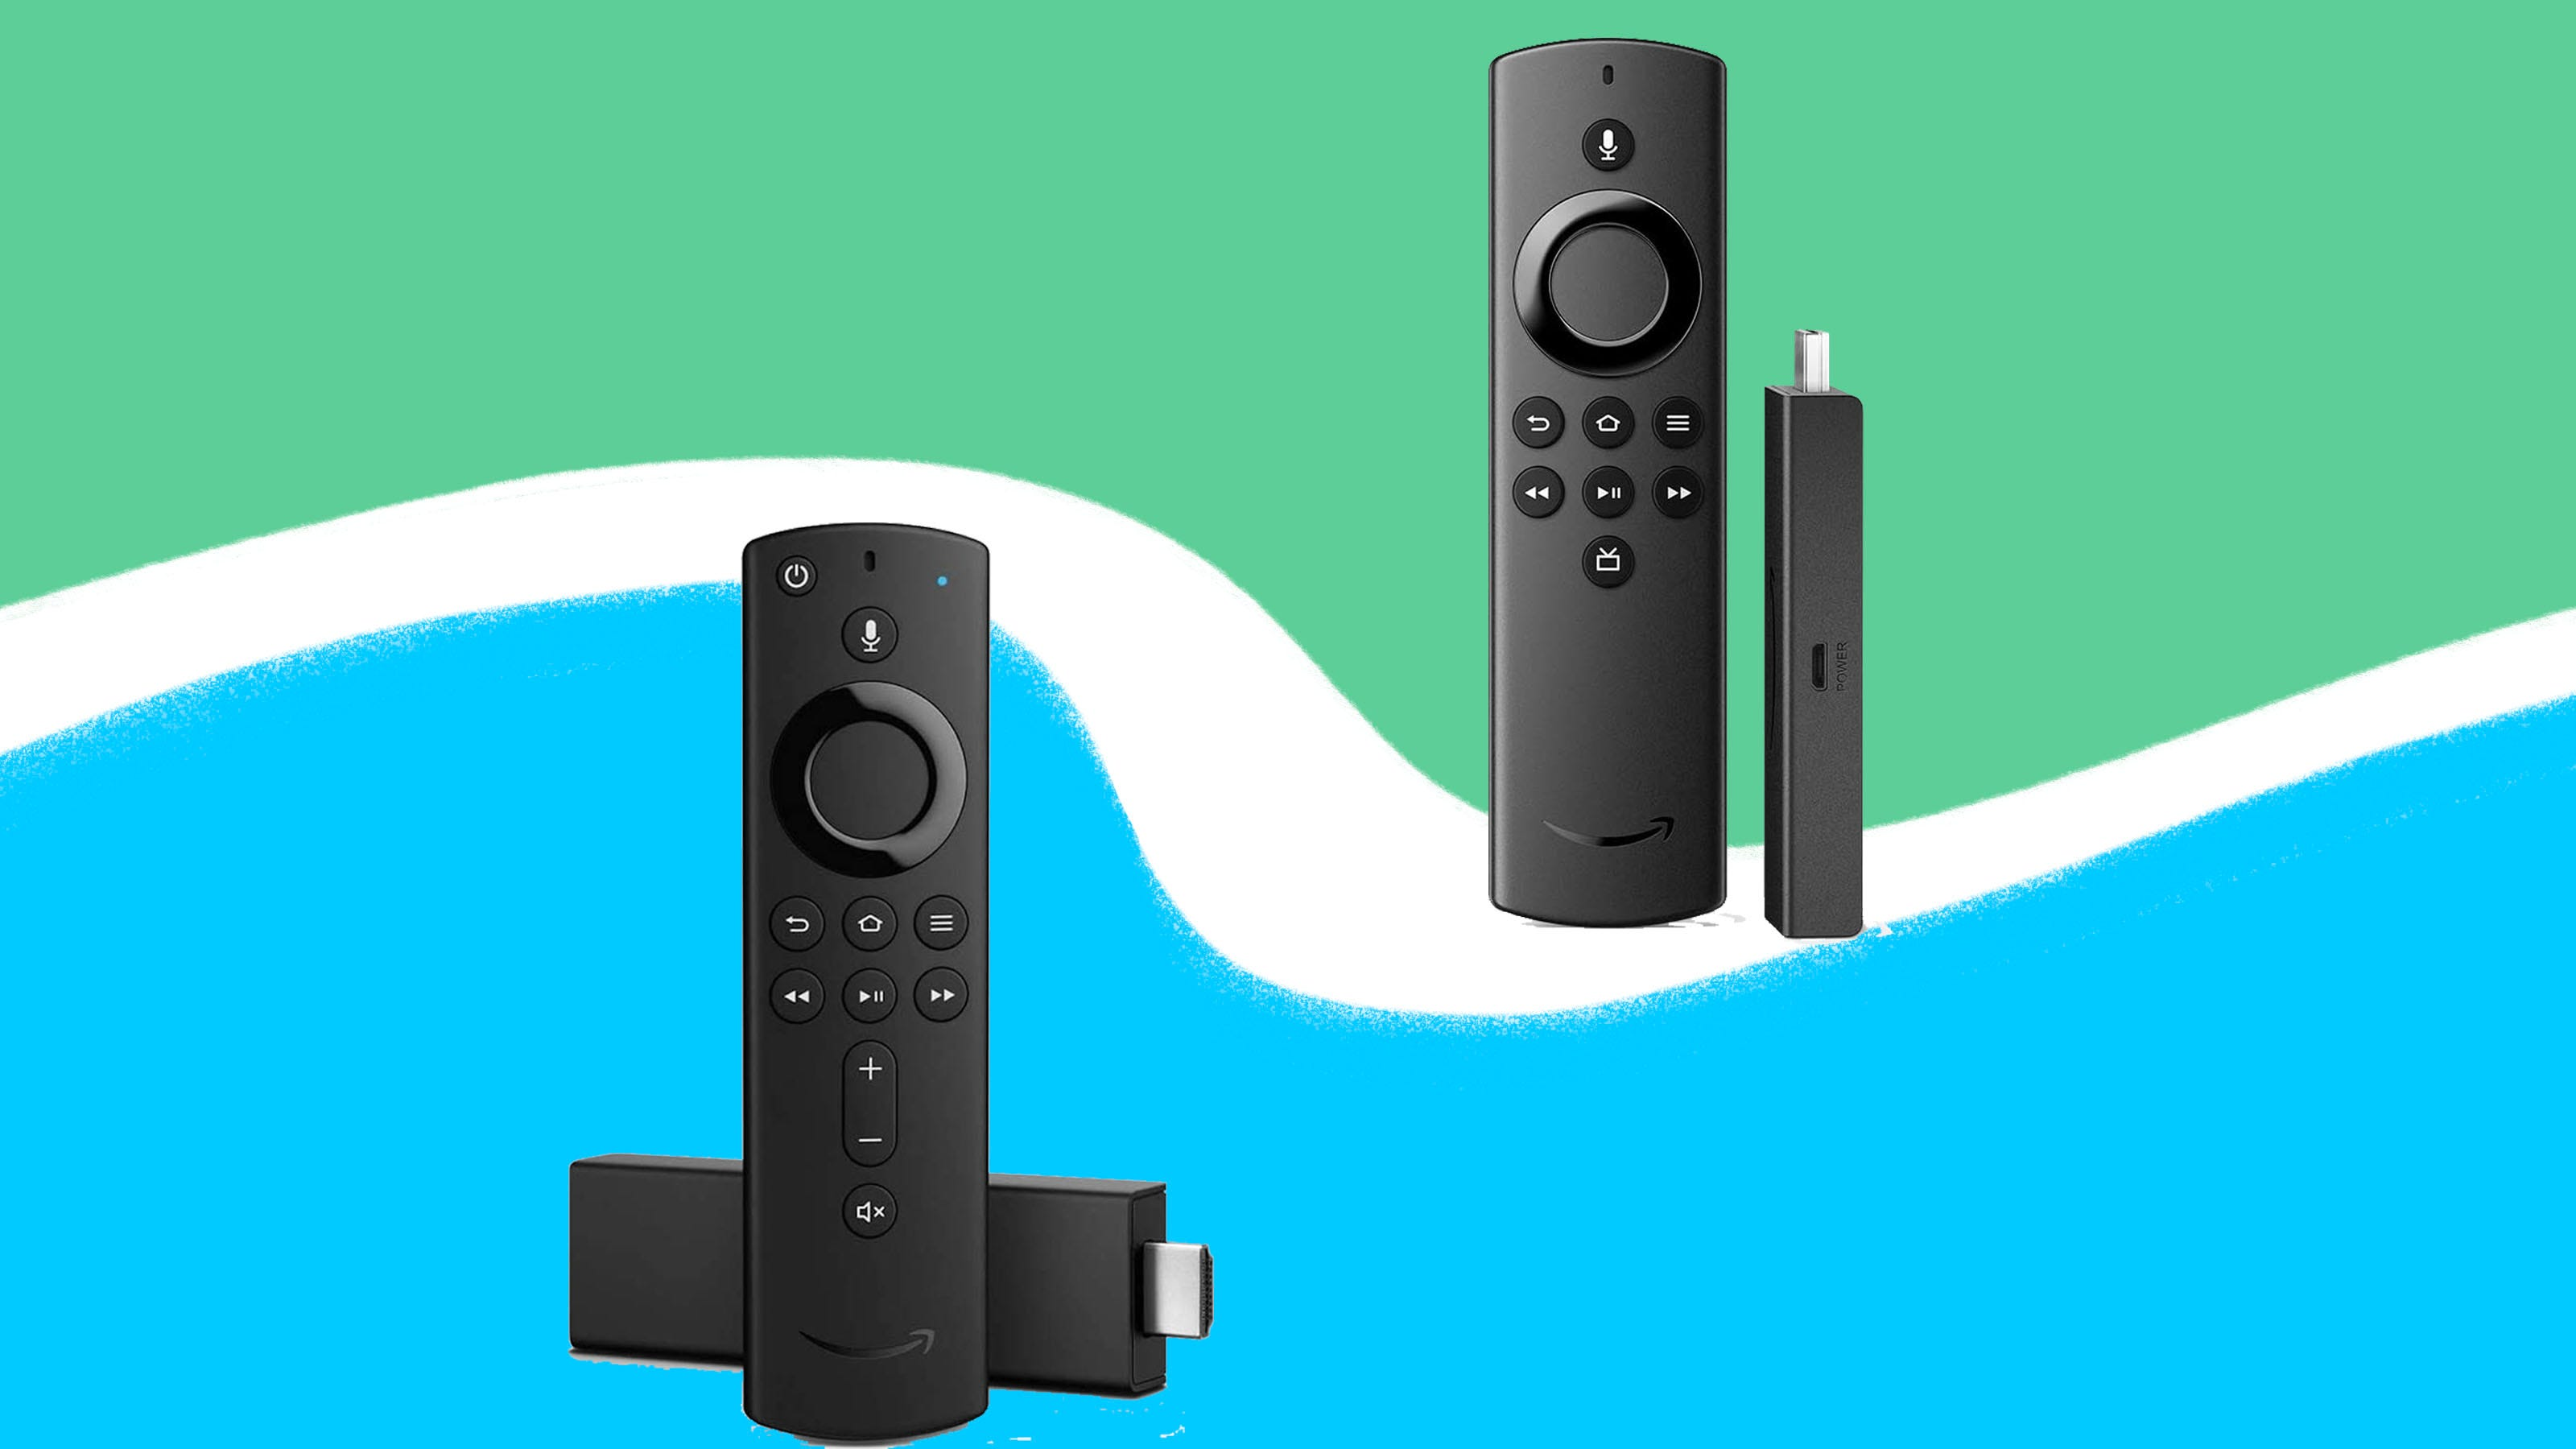 Amazon's choice for fire stick. Prime Day 2021 Get The Amazon Fire Stick 4k For Half Off Right Now